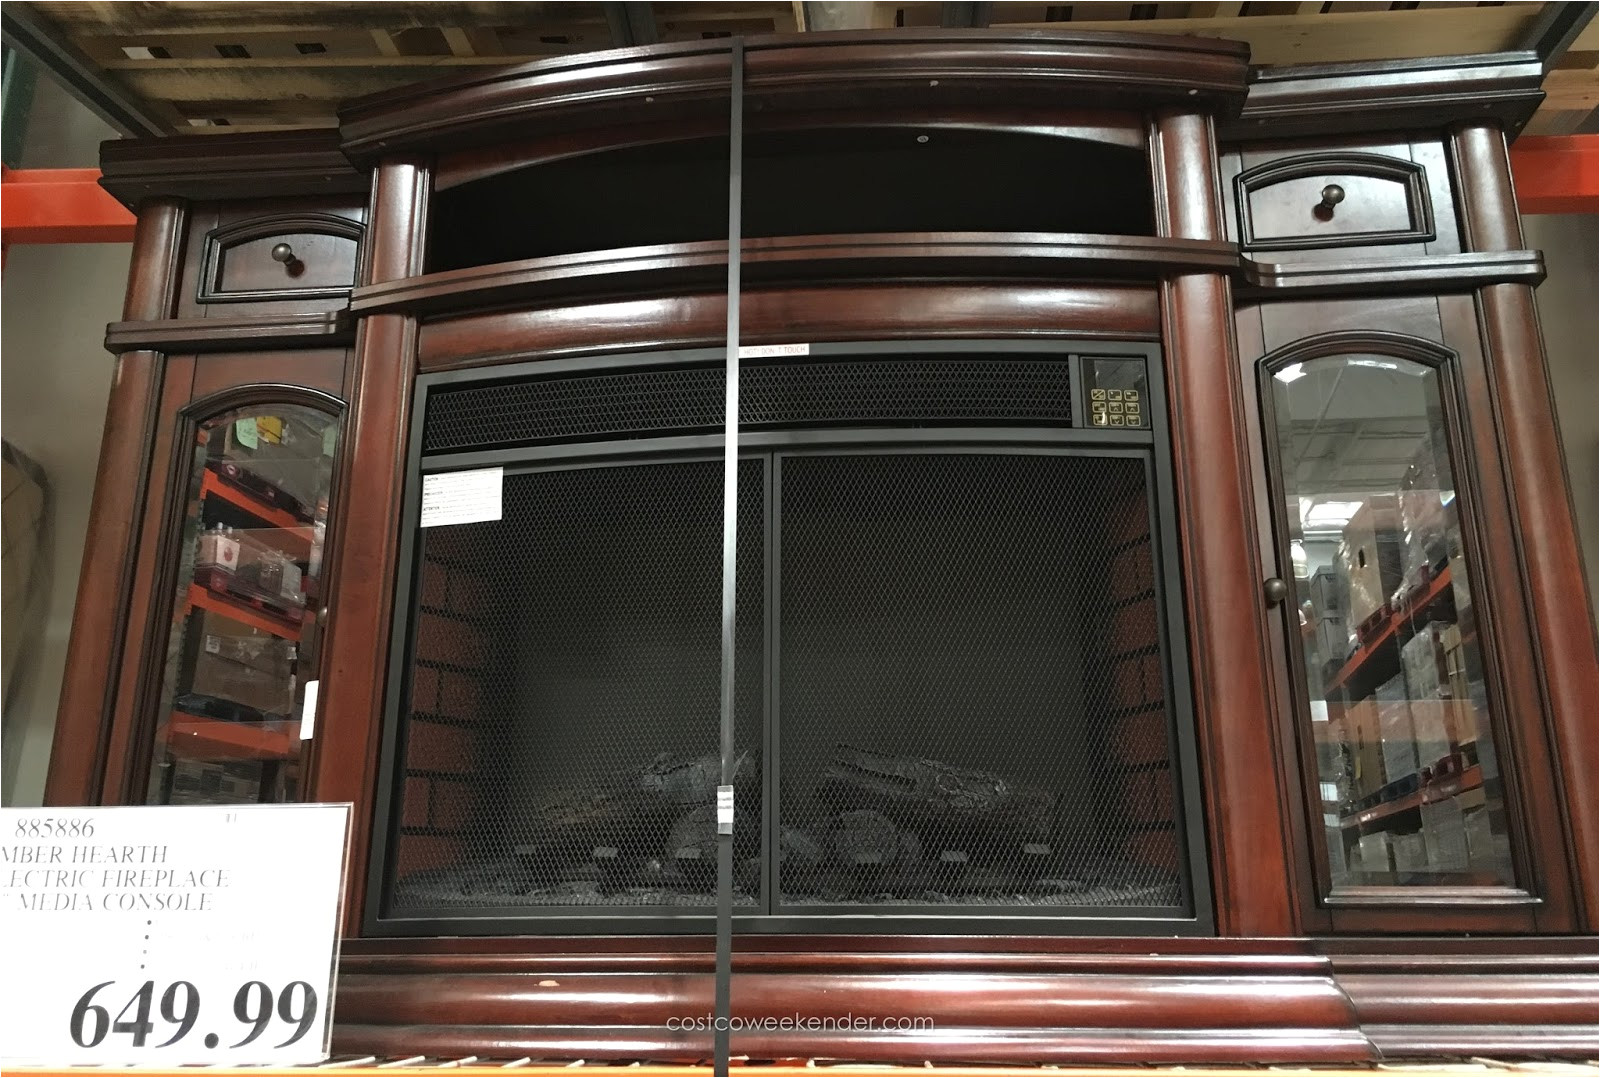 electric fireplace costco amazing ember hearth media weekender within 15